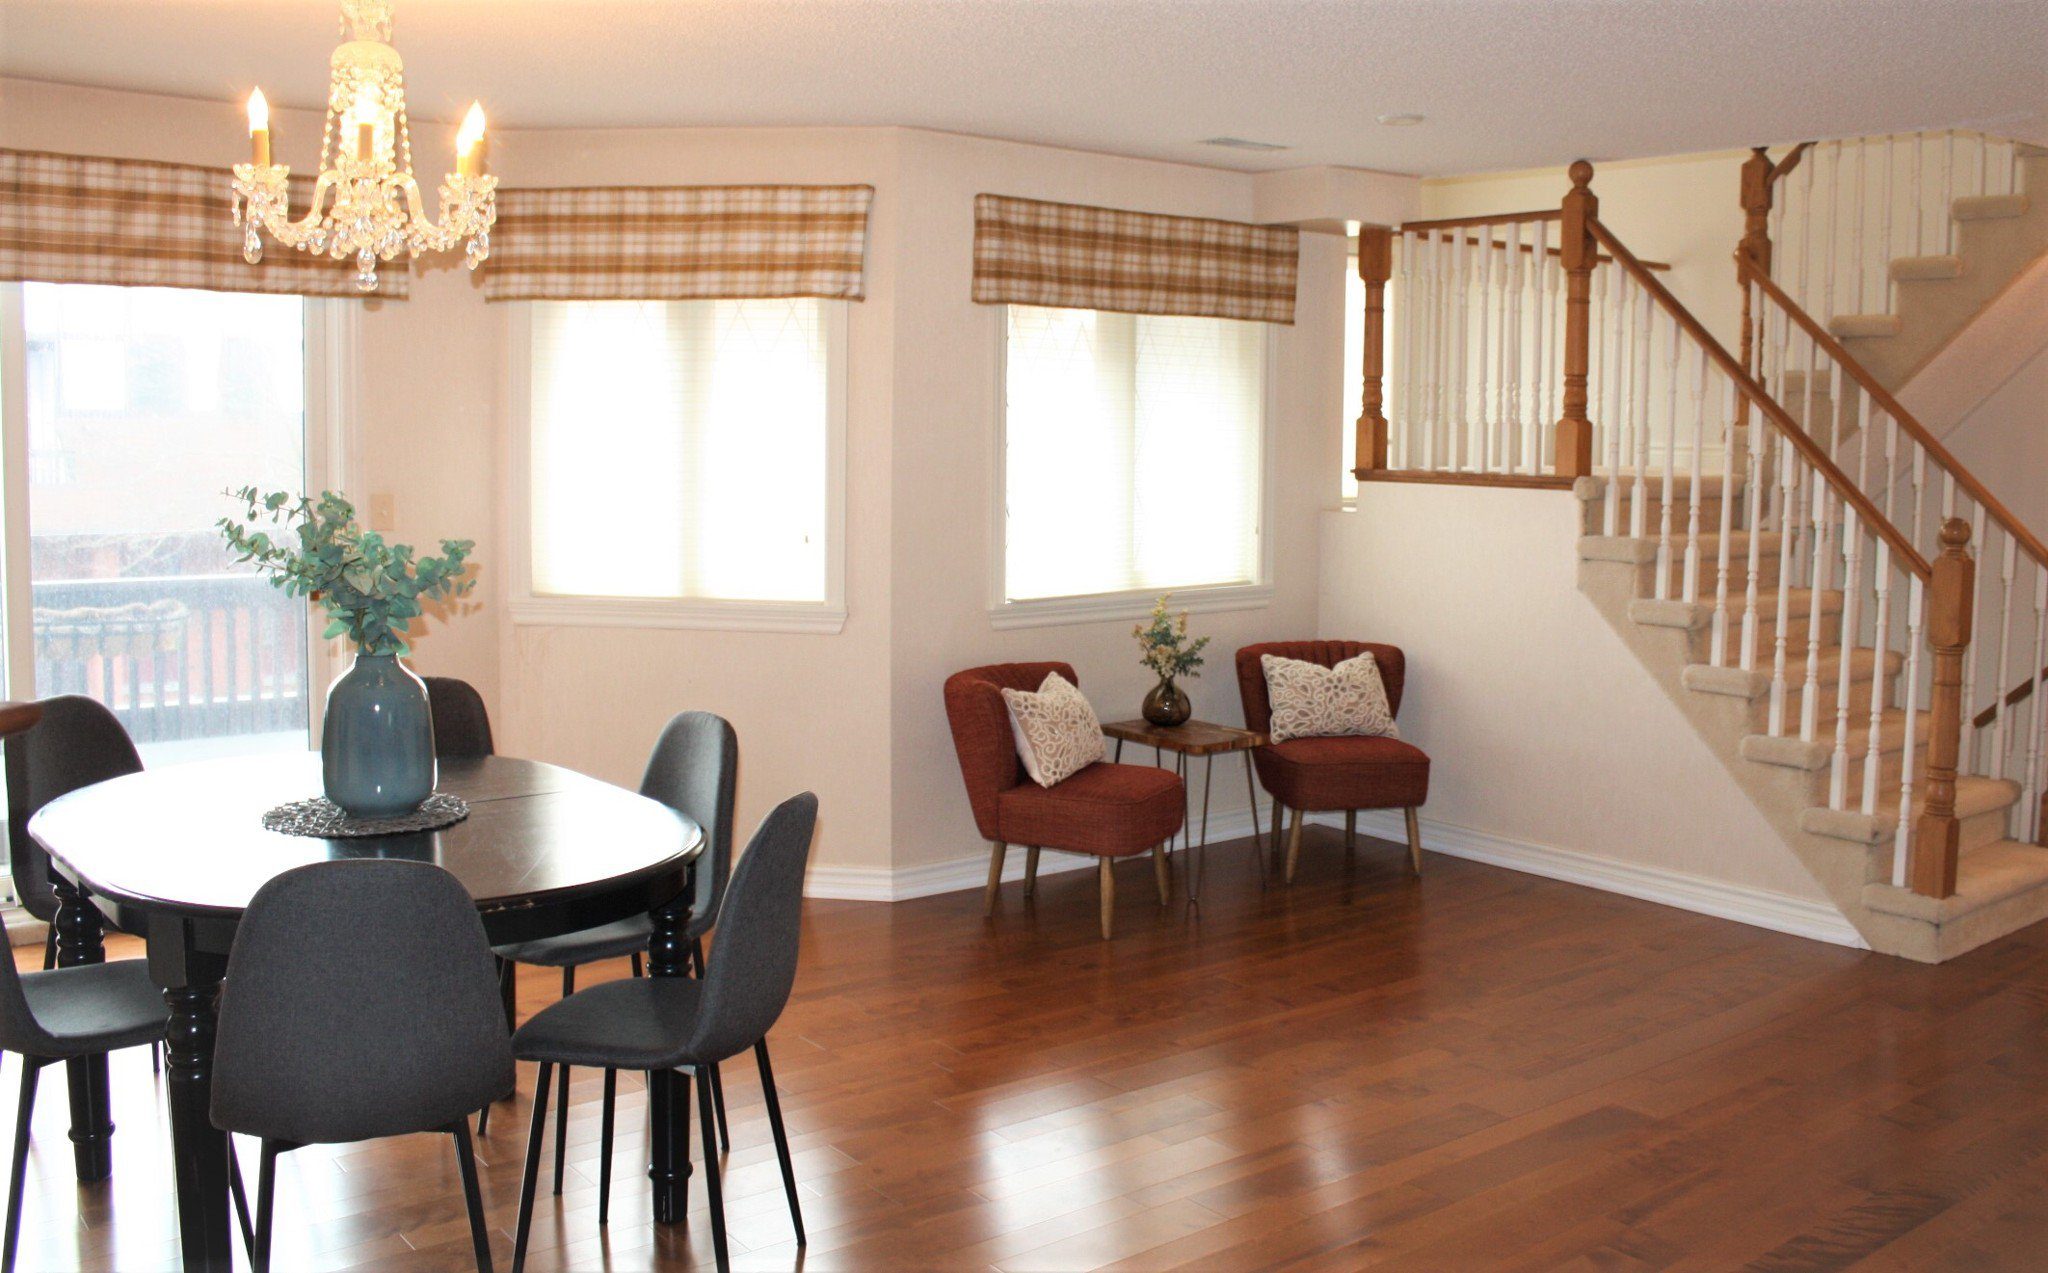 Photo 15: Photos: 113 245 Elgin Street in Cobourg: Residential Attached for sale : MLS®# 219780